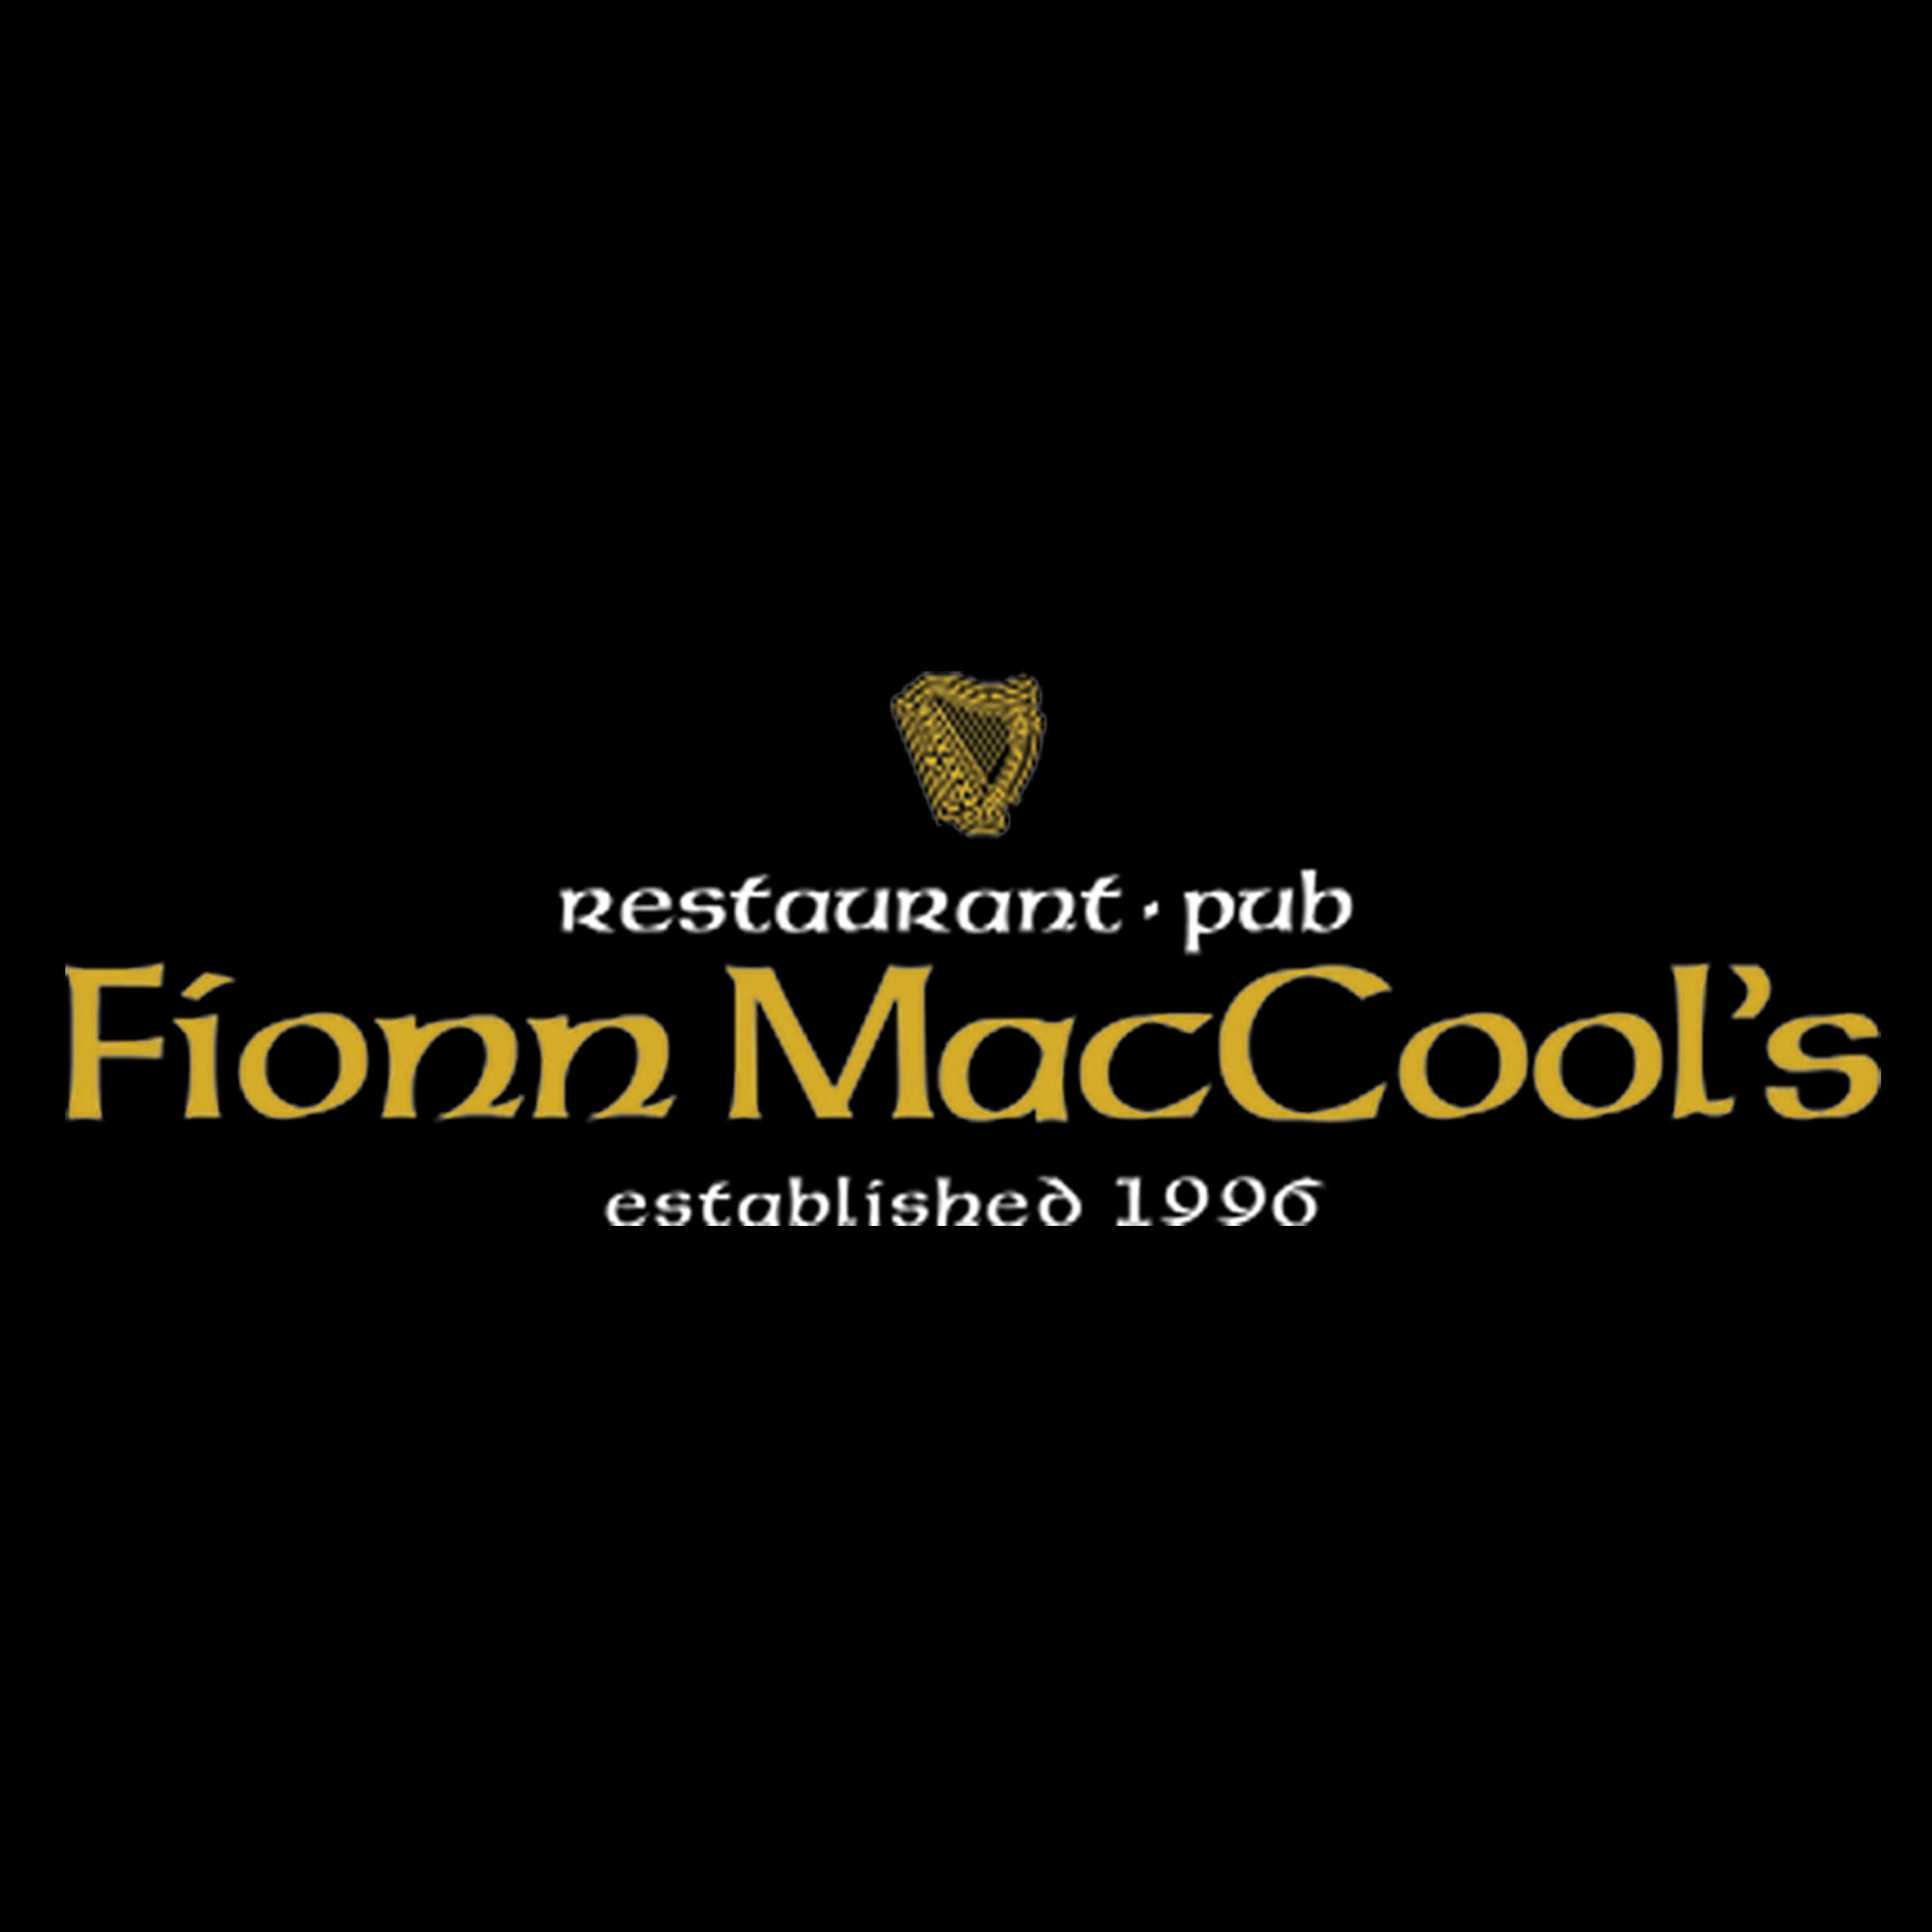 Fionn MacCool's Burlington